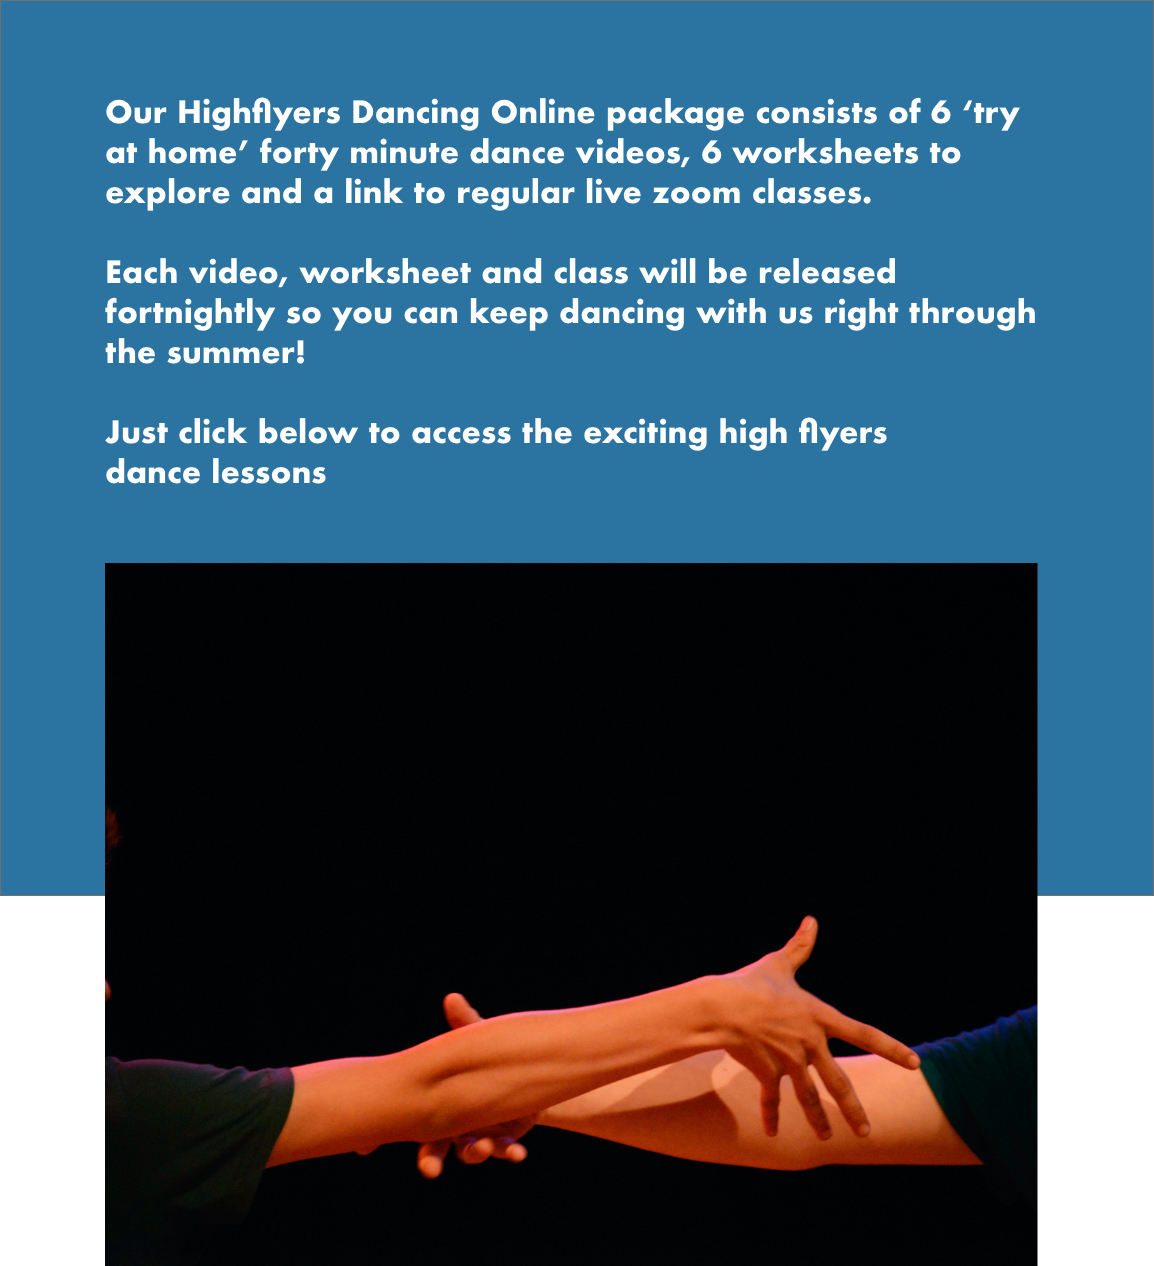 Highflyers Front Page - Section 2